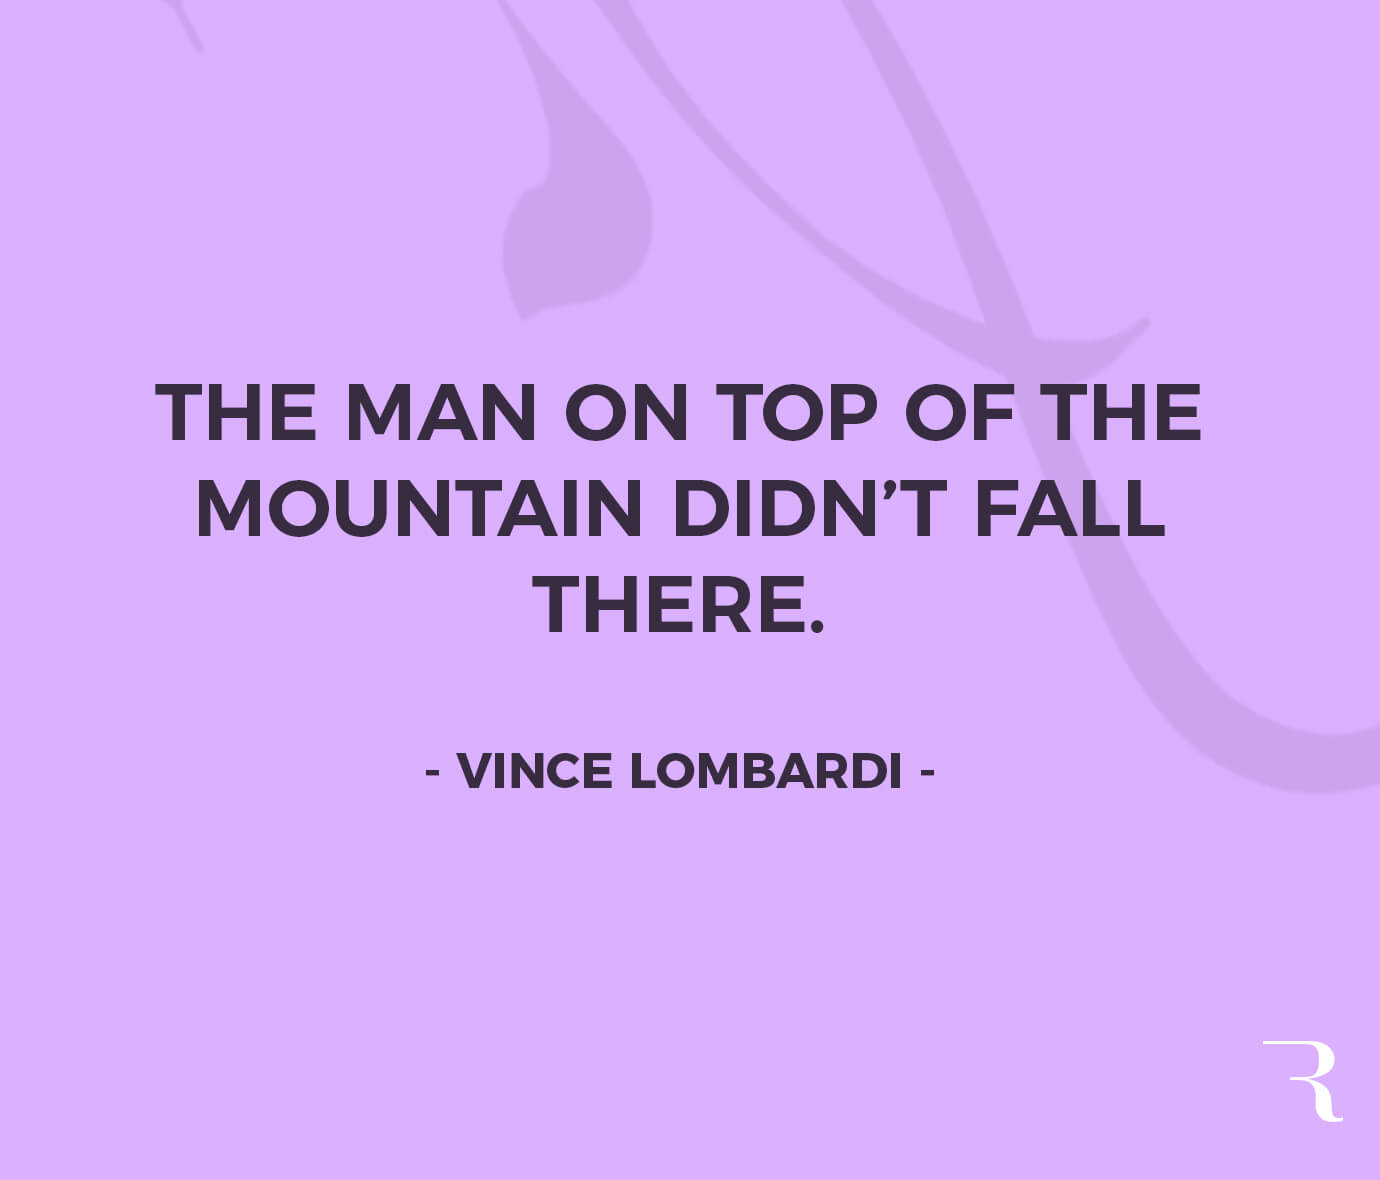 """Motivational Quotes: """"The man on top of the mountain didn't fall there."""" 112 Motivational Quotes to Be a Better Entrepreneur"""